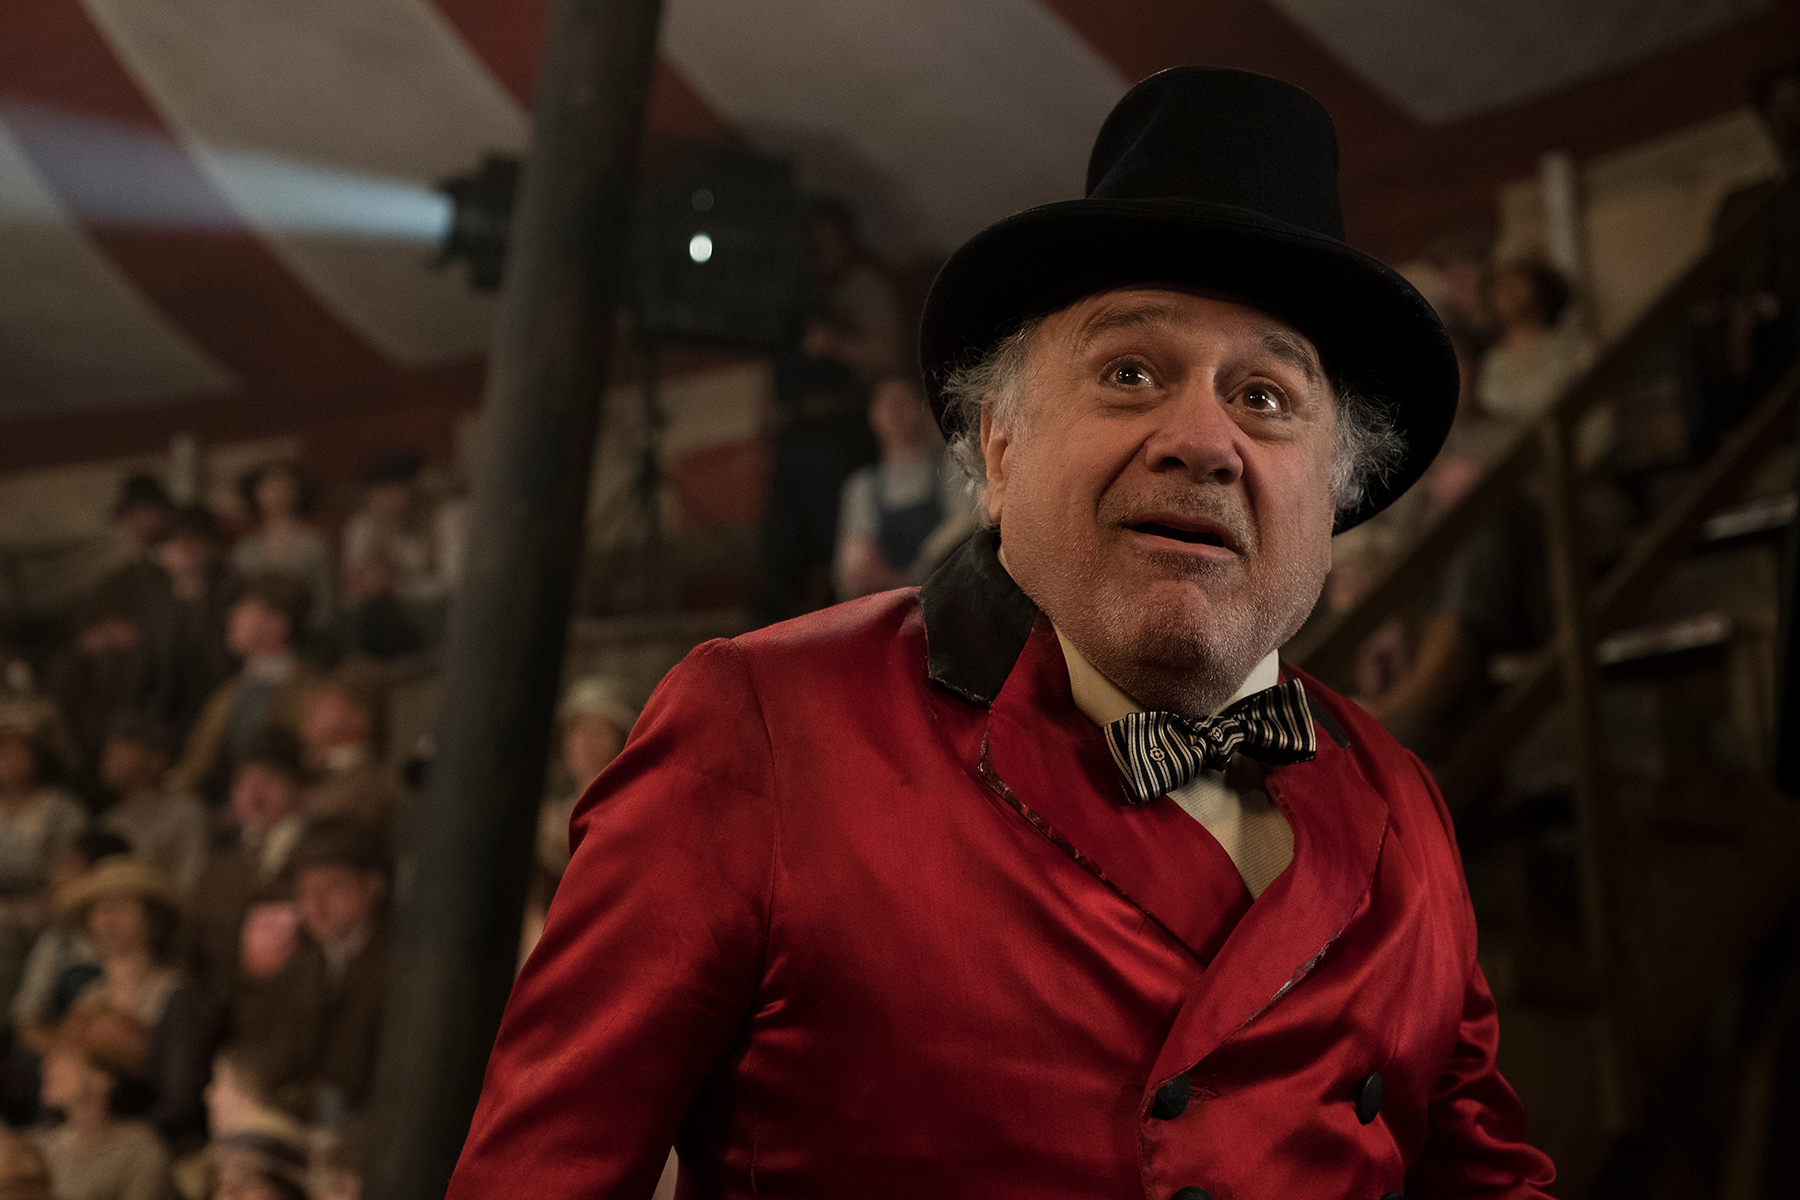 Danny DeVito, as the Ringmaster in Dumbo, can't believe an elephant can fly.